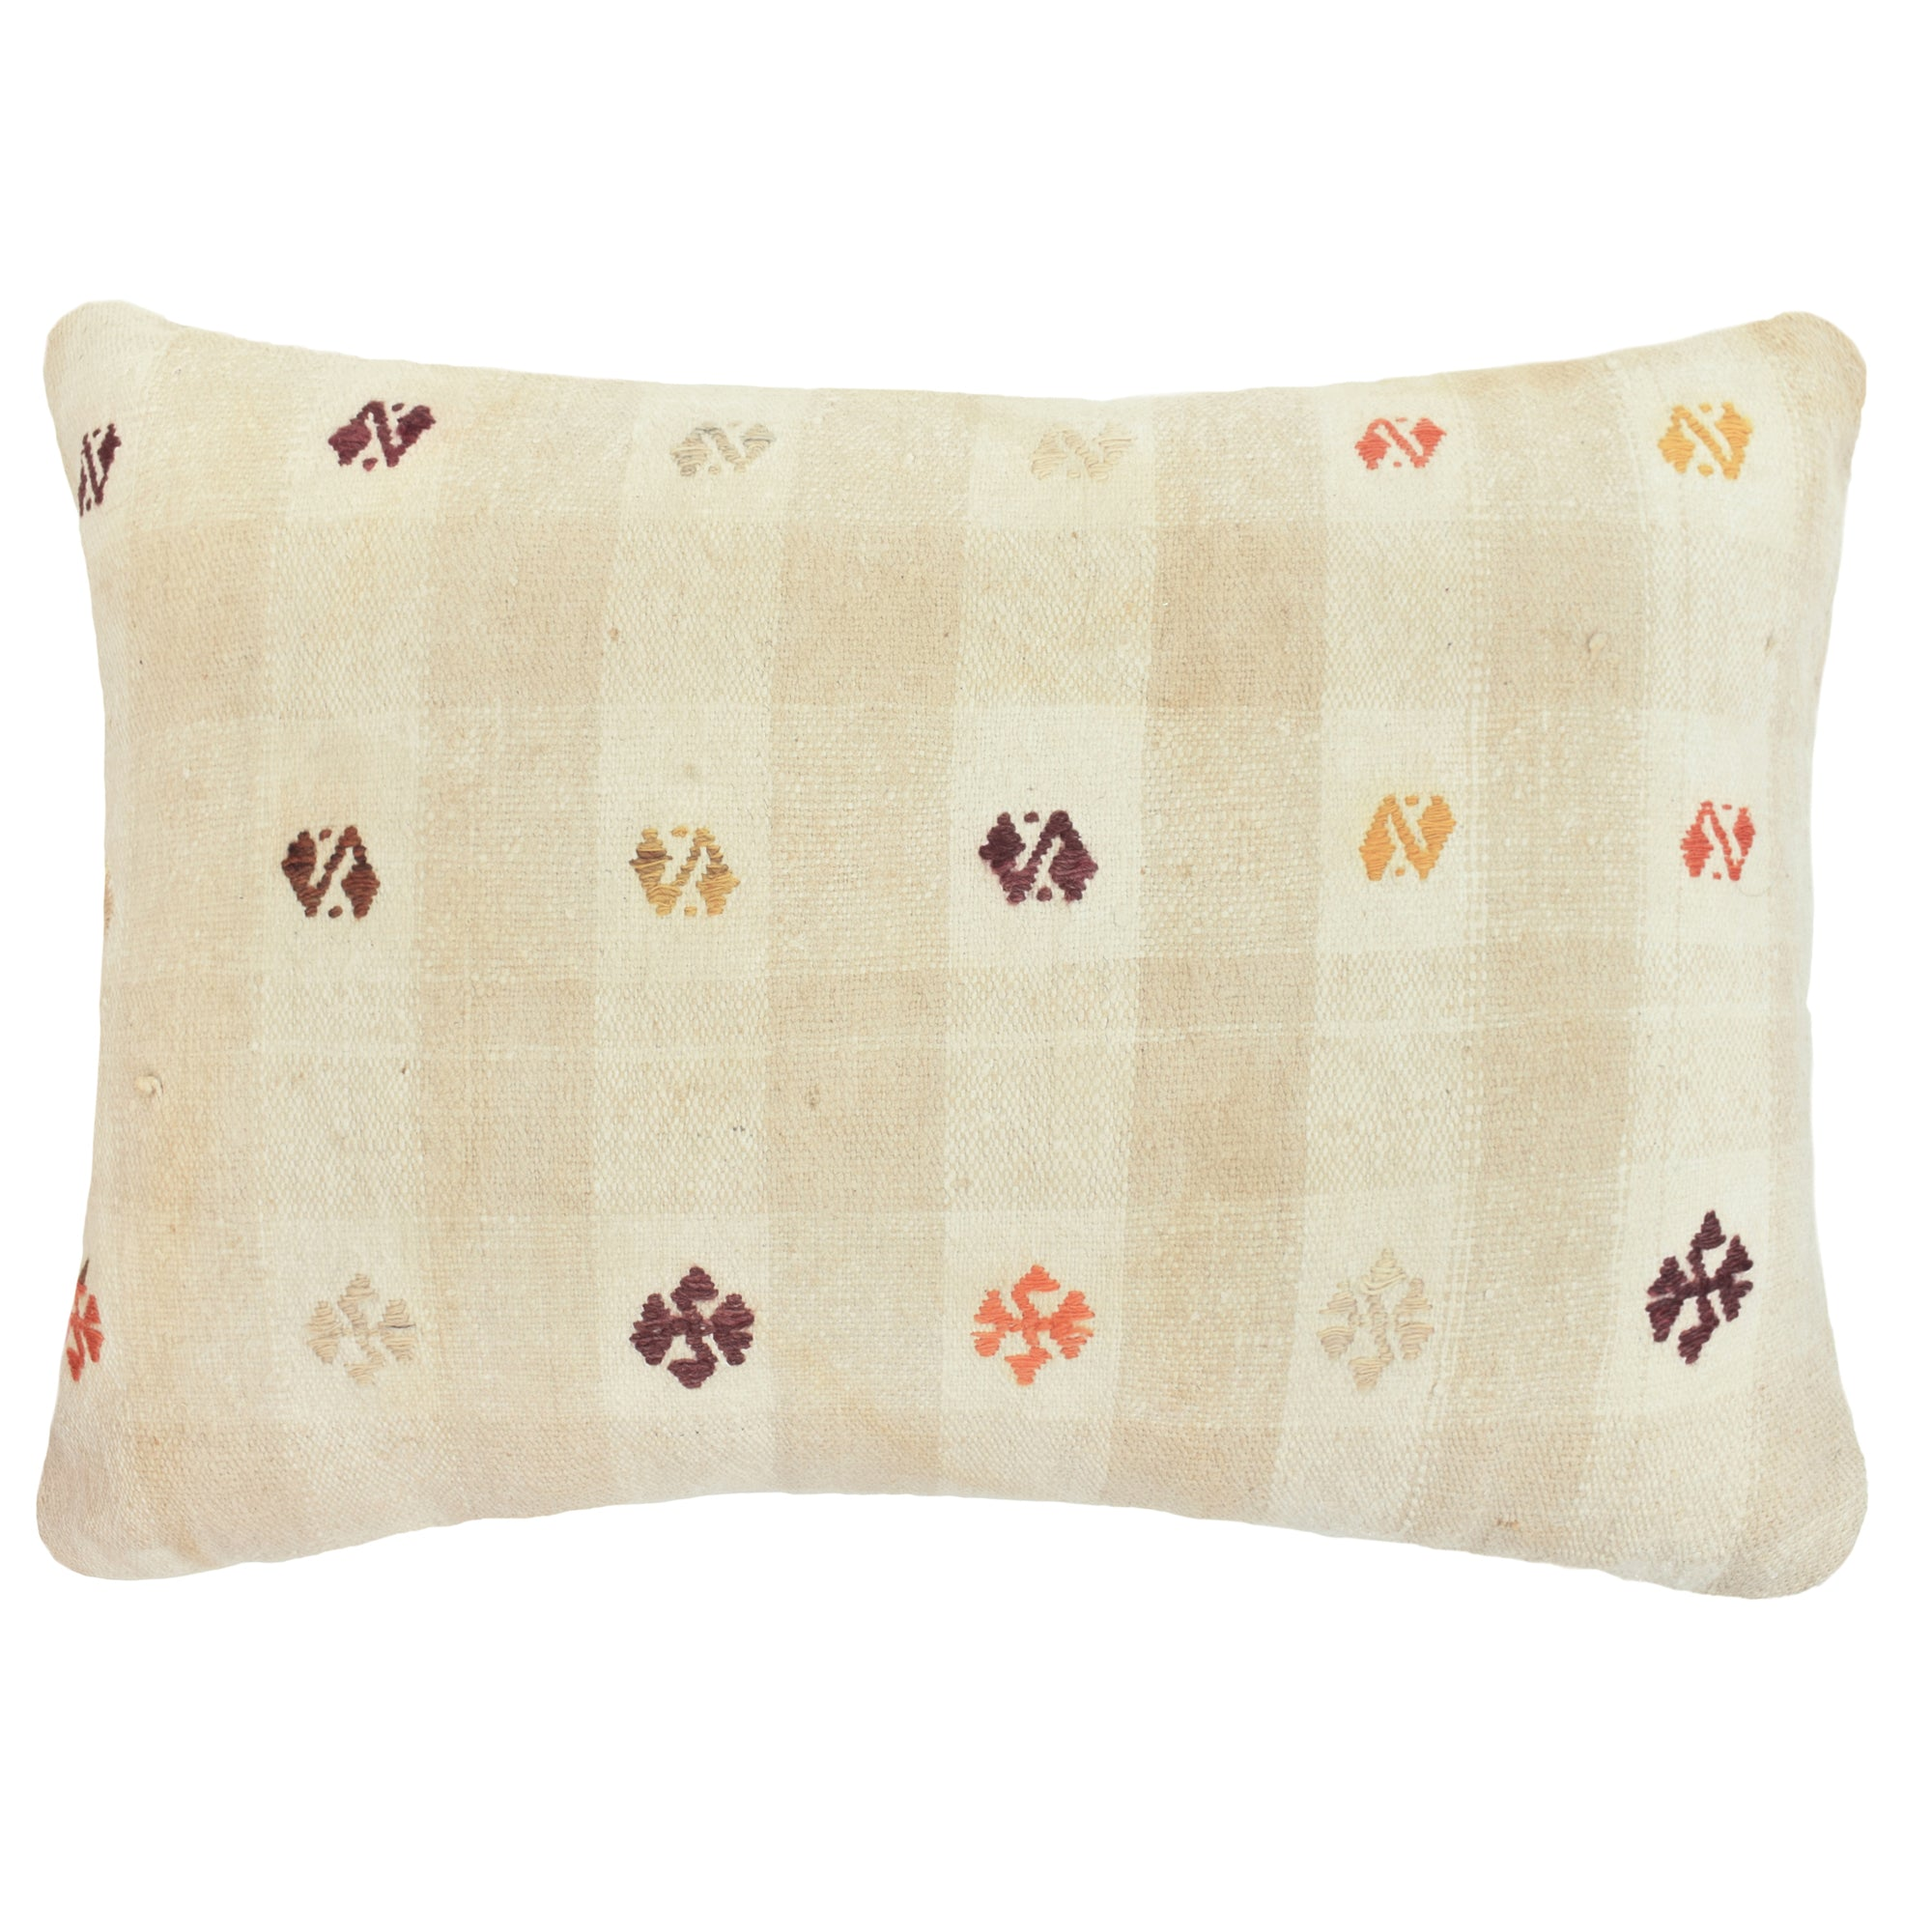 Yonder Living Vintage Kilim Cushion Lumbar Cream 1